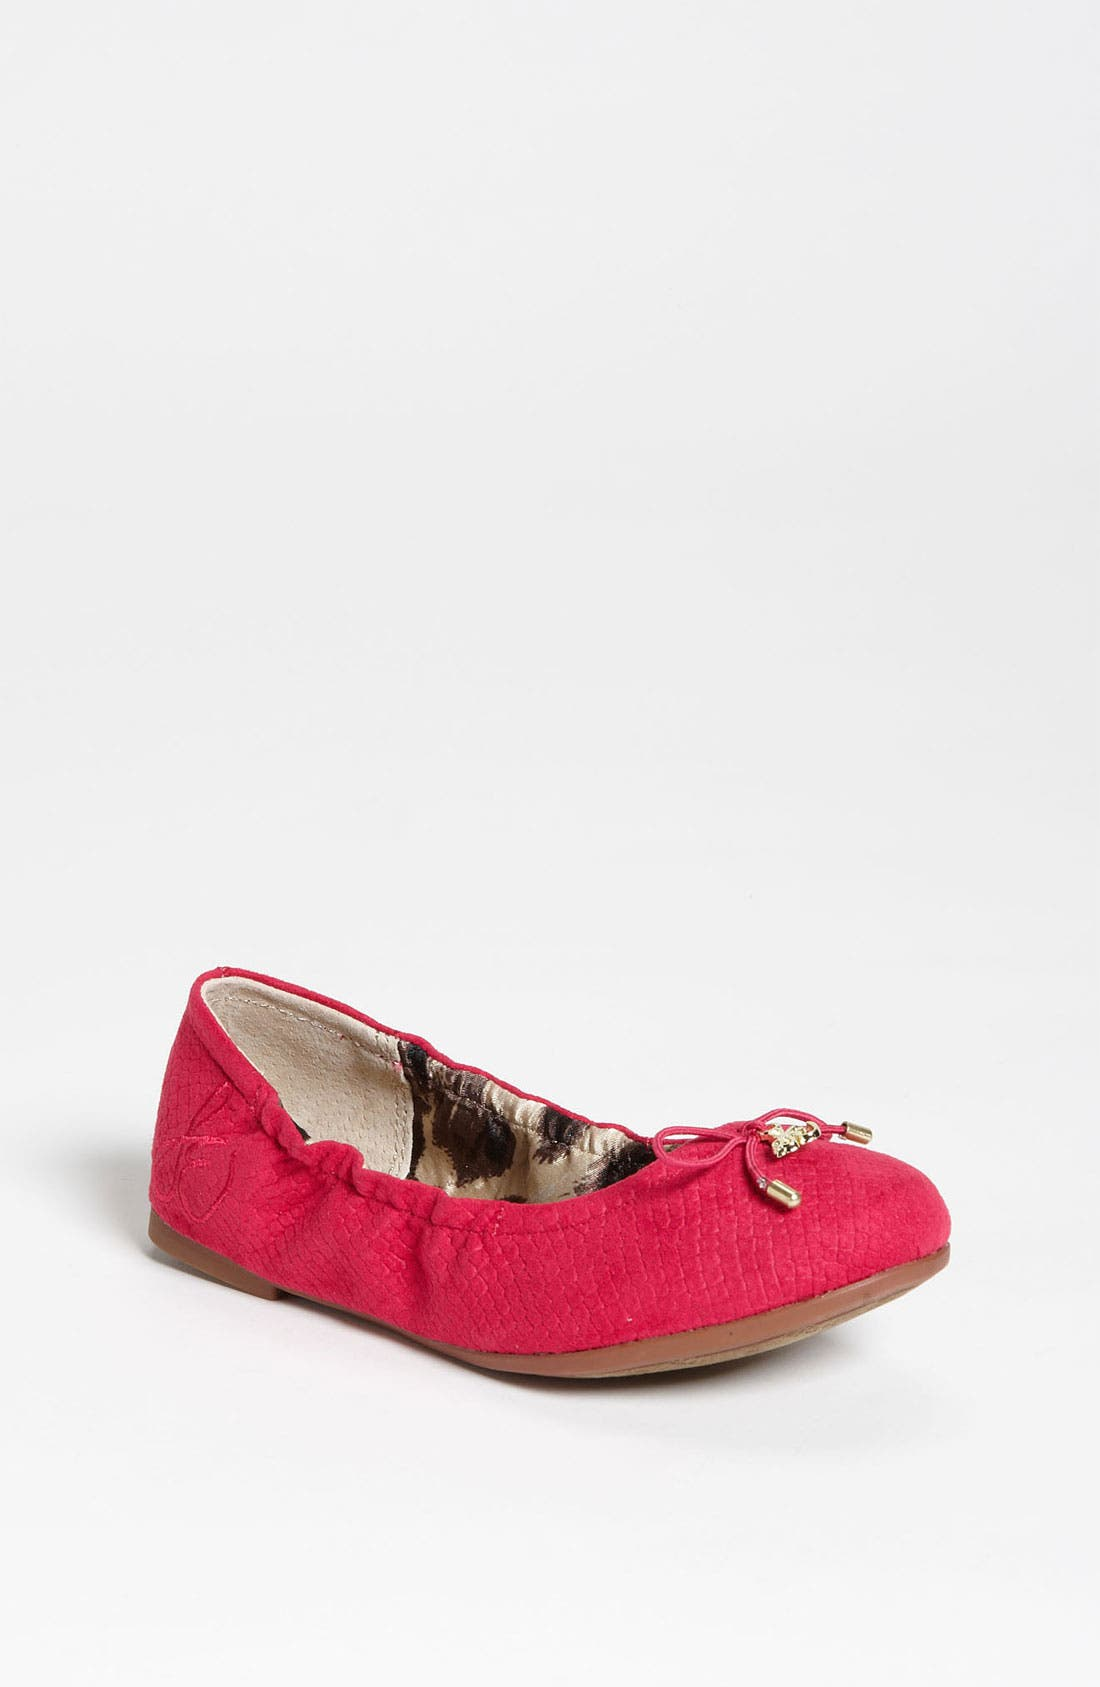 Alternate Image 1 Selected - Sam Edelman 'Fiona' Flat (Toddler, Little Kid & Big Kid)